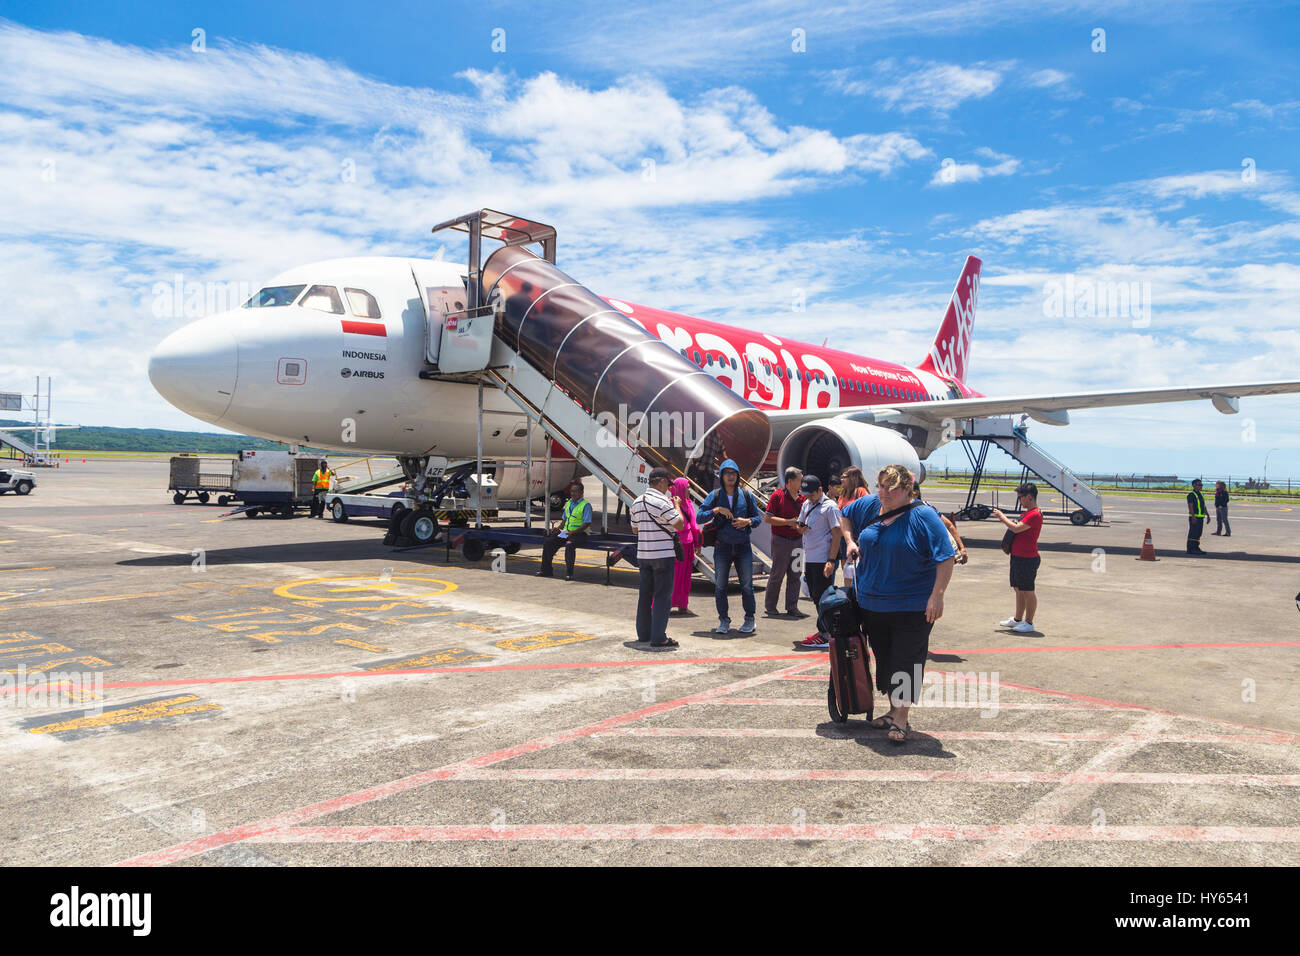 Indonesia Airport Stock Photos Indonesia Airport Stock Images Alamy